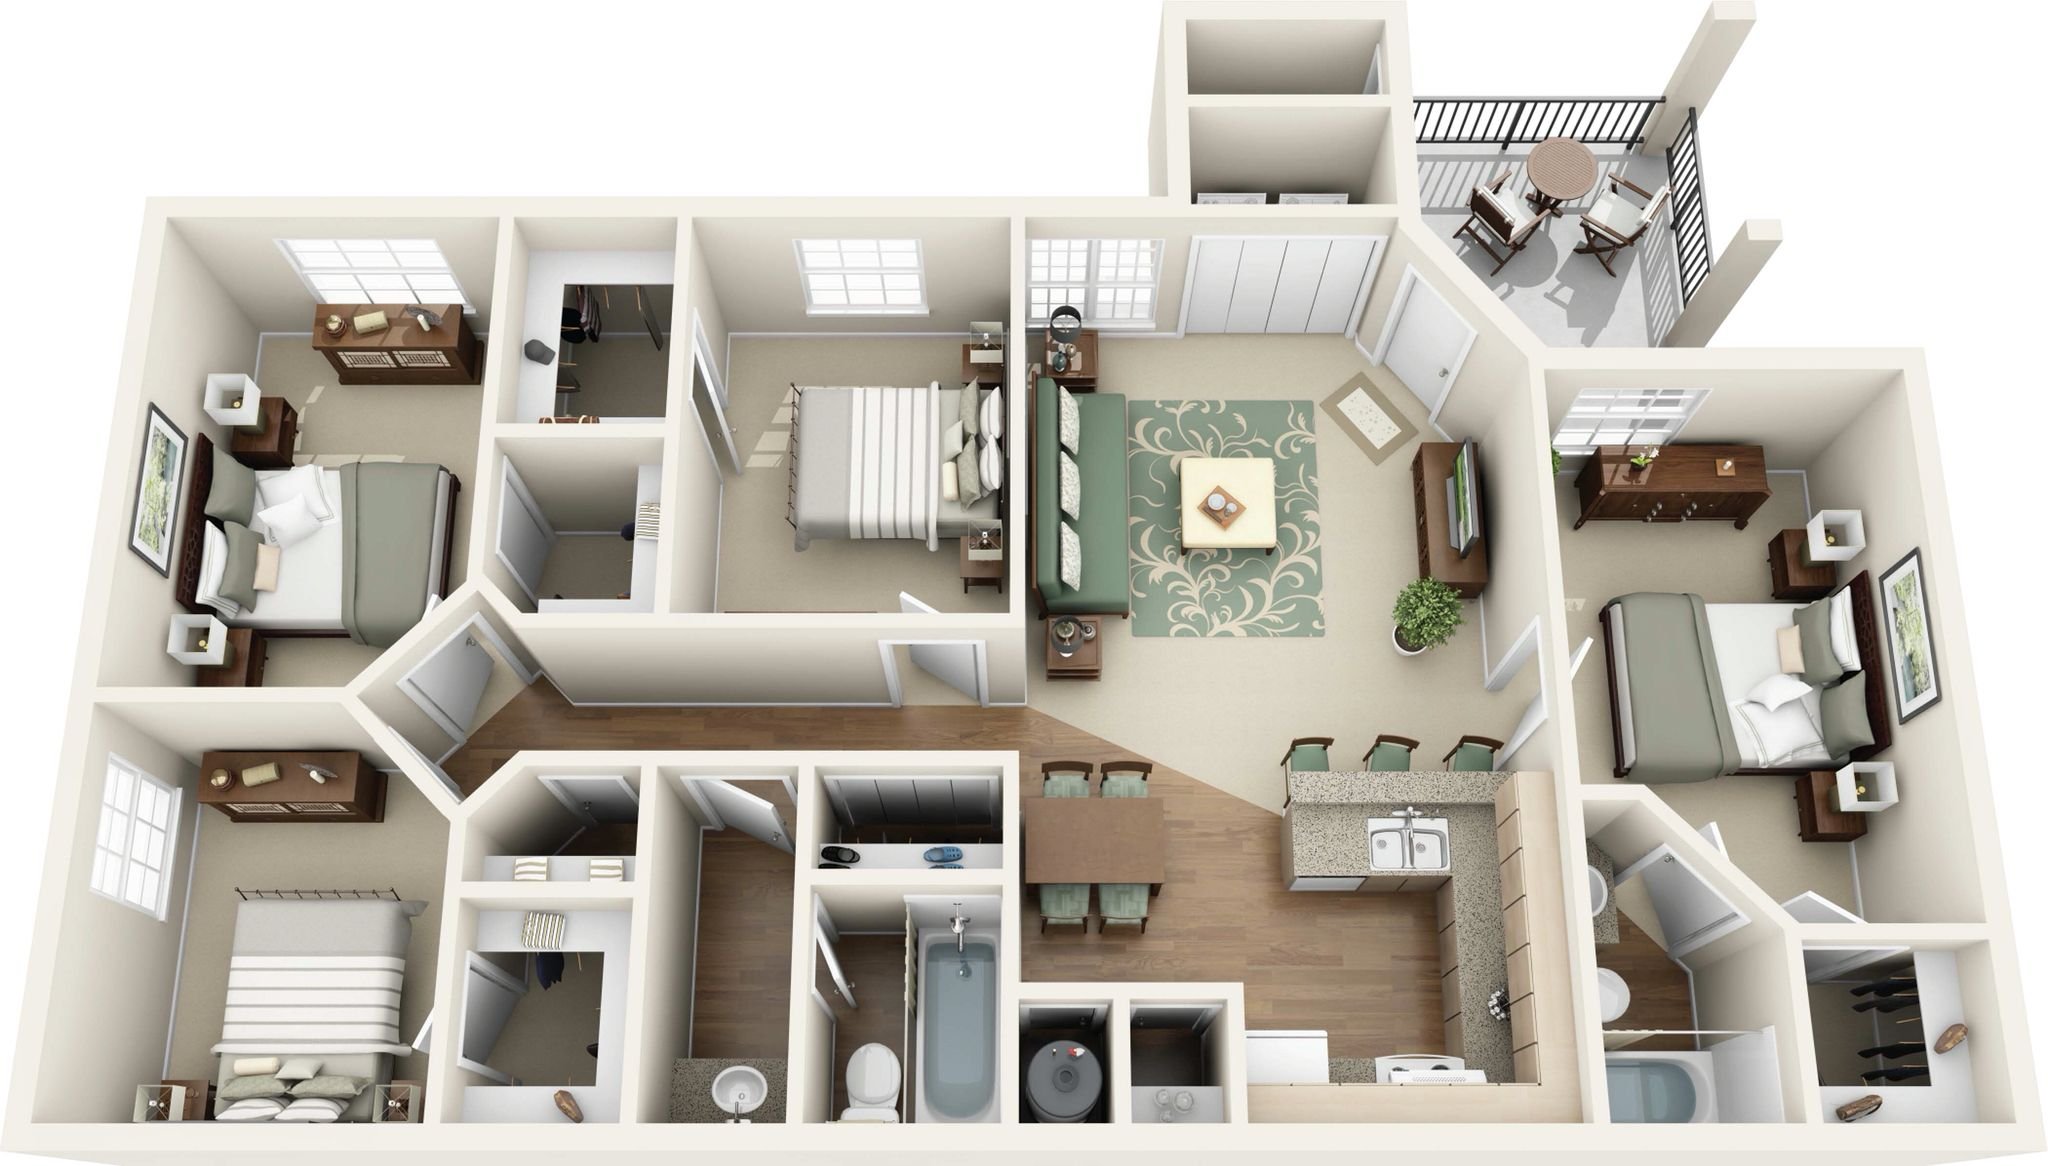 Pin By Alyerinpederson On House In 2020 Modern House Floor Plans Apartment Floor Plans House Layouts